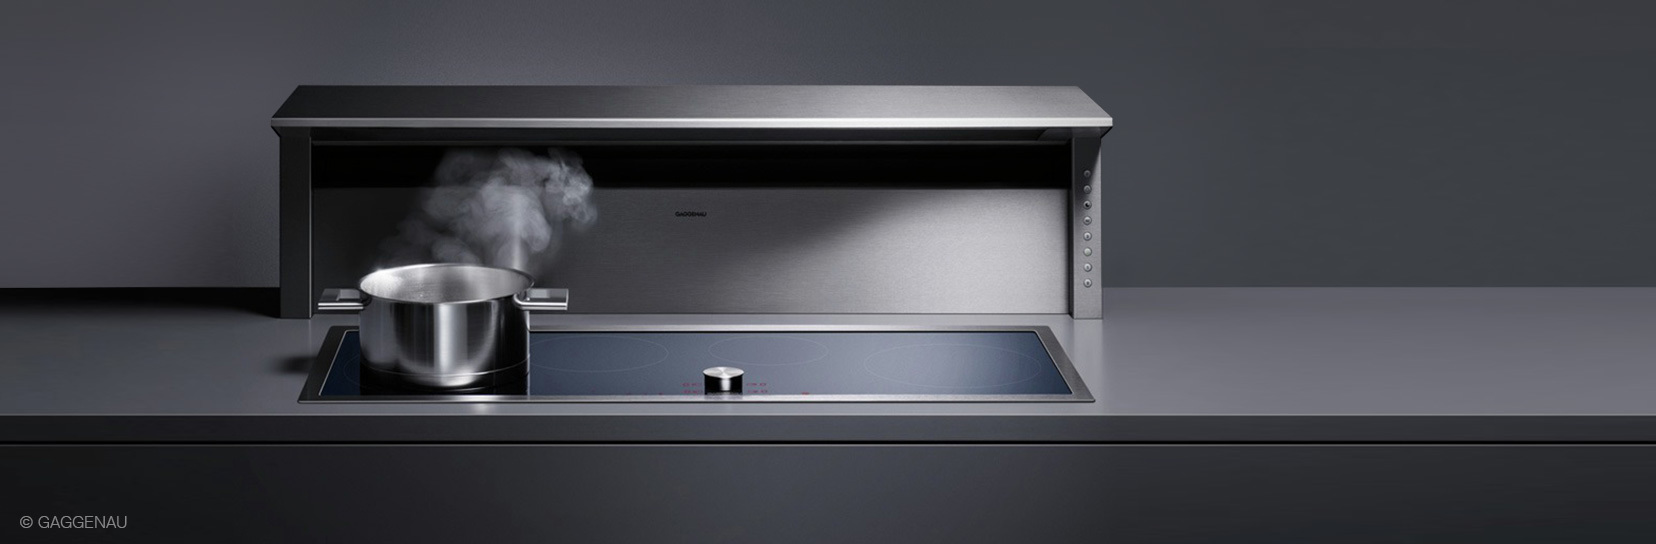 Teaser_gaggenau_at400-table-ventilation_1656x544-01